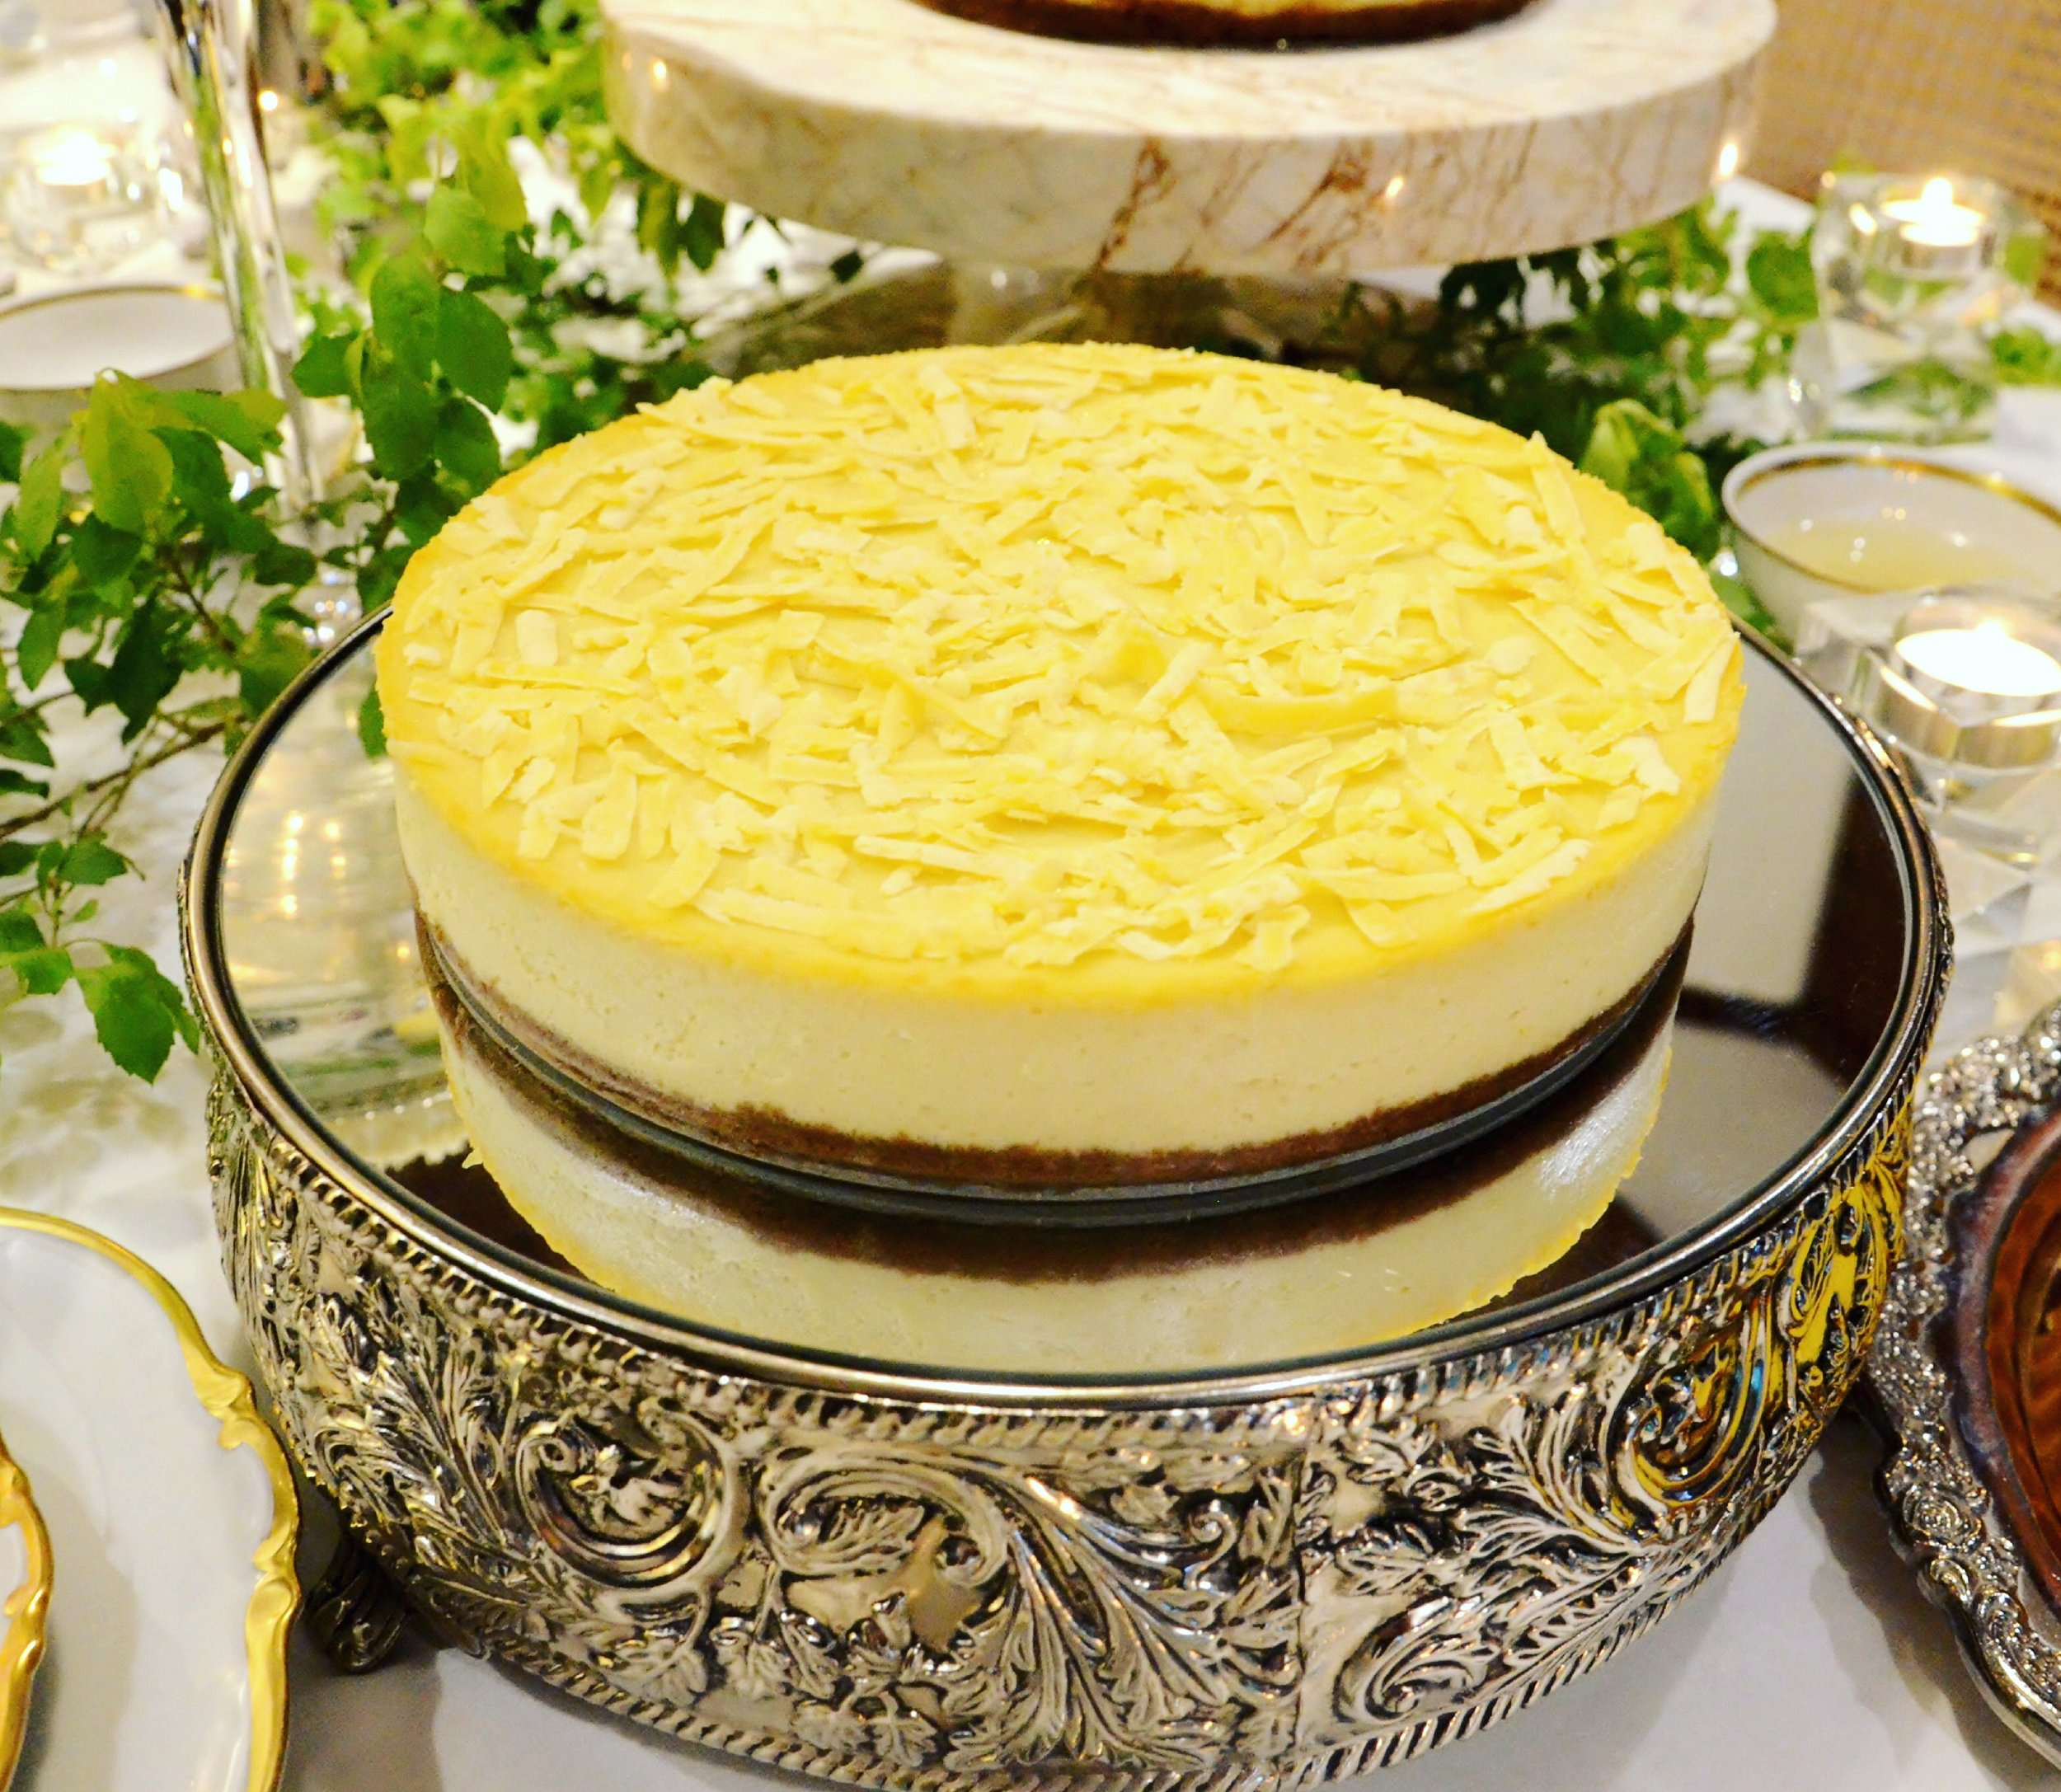 - QUEZO DE BOLA CHEESECAKEA Holiday Favorite!Generous shavings of Quezo de Bola enveloped in a rich and velvety cheesecake.Available in Original and Sugar-free variant.9 inch (serves 10-12) Original P14006 inch (serves 6-8) Original P7009 inch Sugar-free P14006 inch Sugar-free P700Place an Order